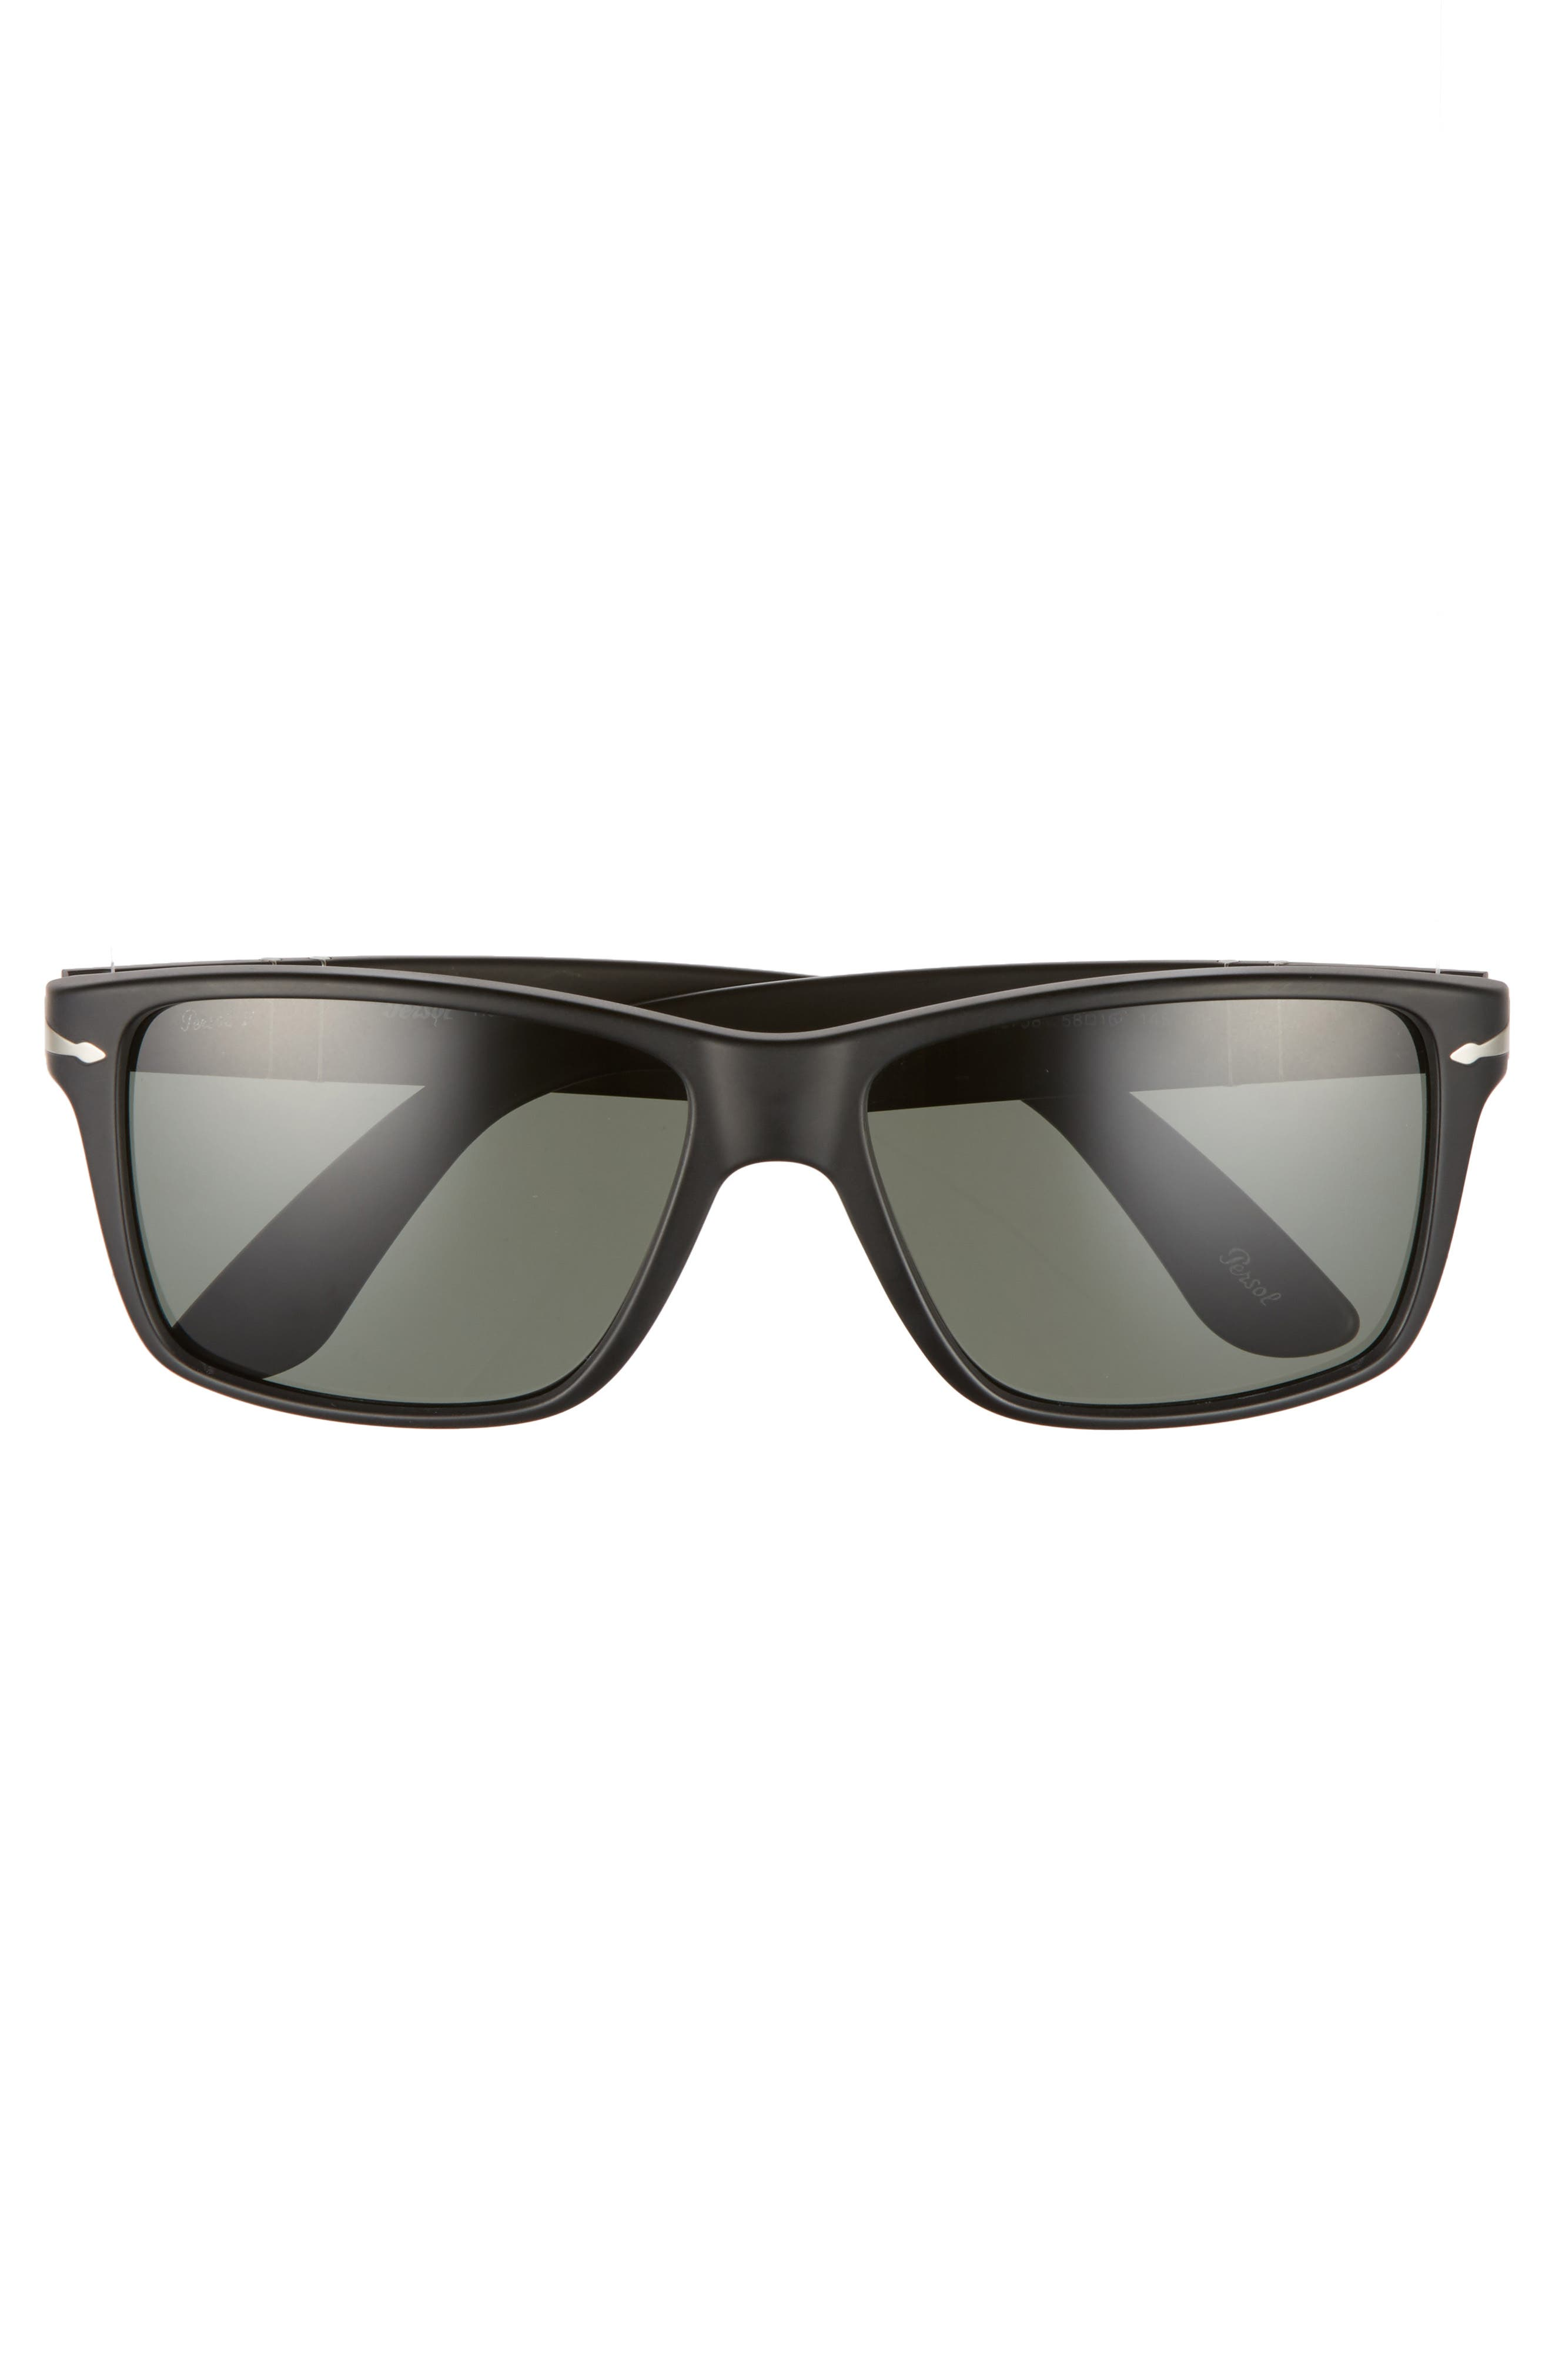 58mm Polarized Sunglasses,                             Alternate thumbnail 2, color,